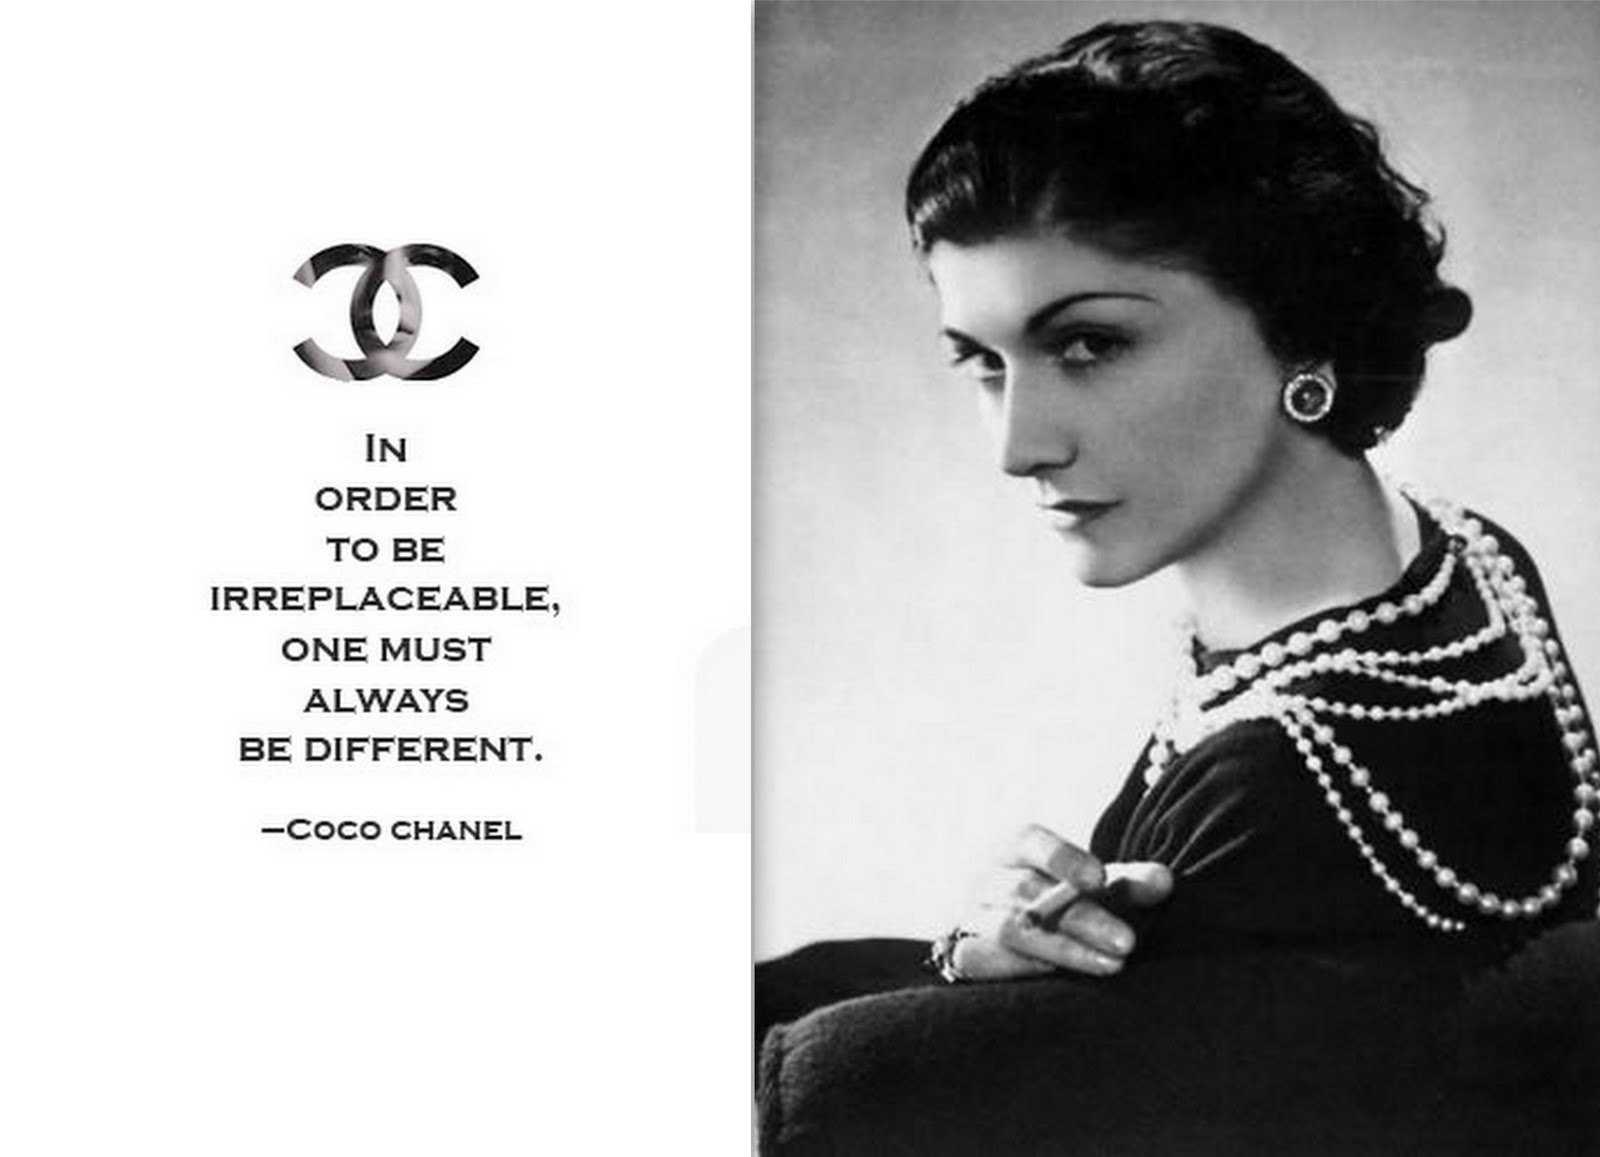 Chanel quote #1